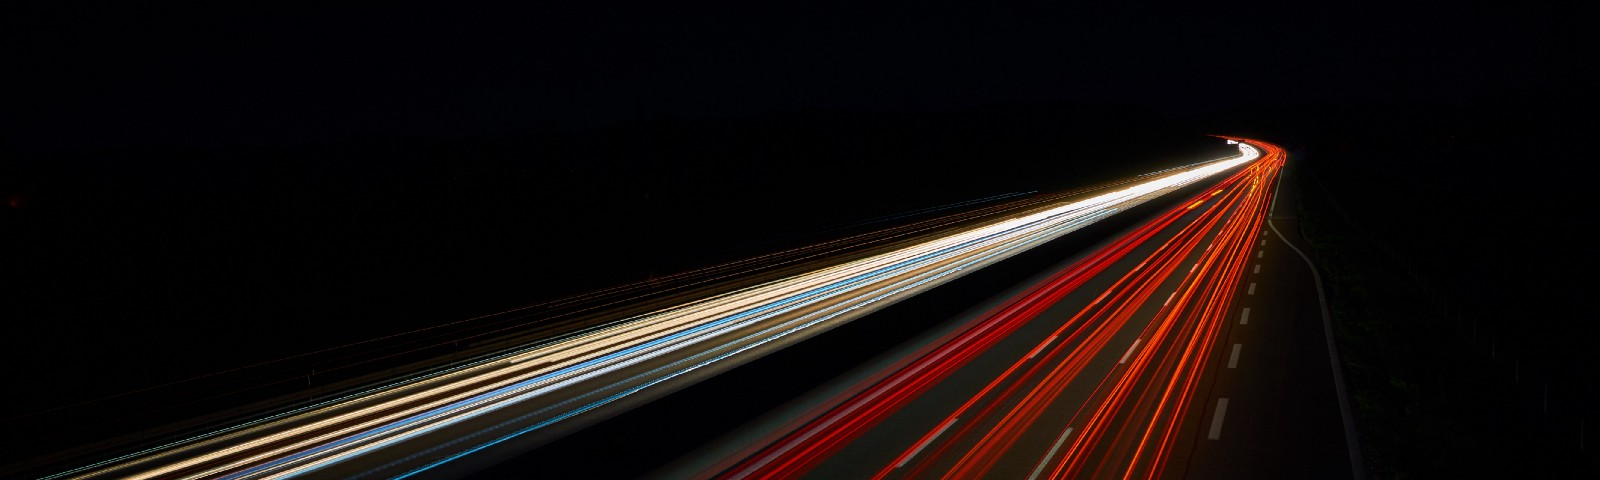 Long-exposure photo of automobile headlights and taillights at speed